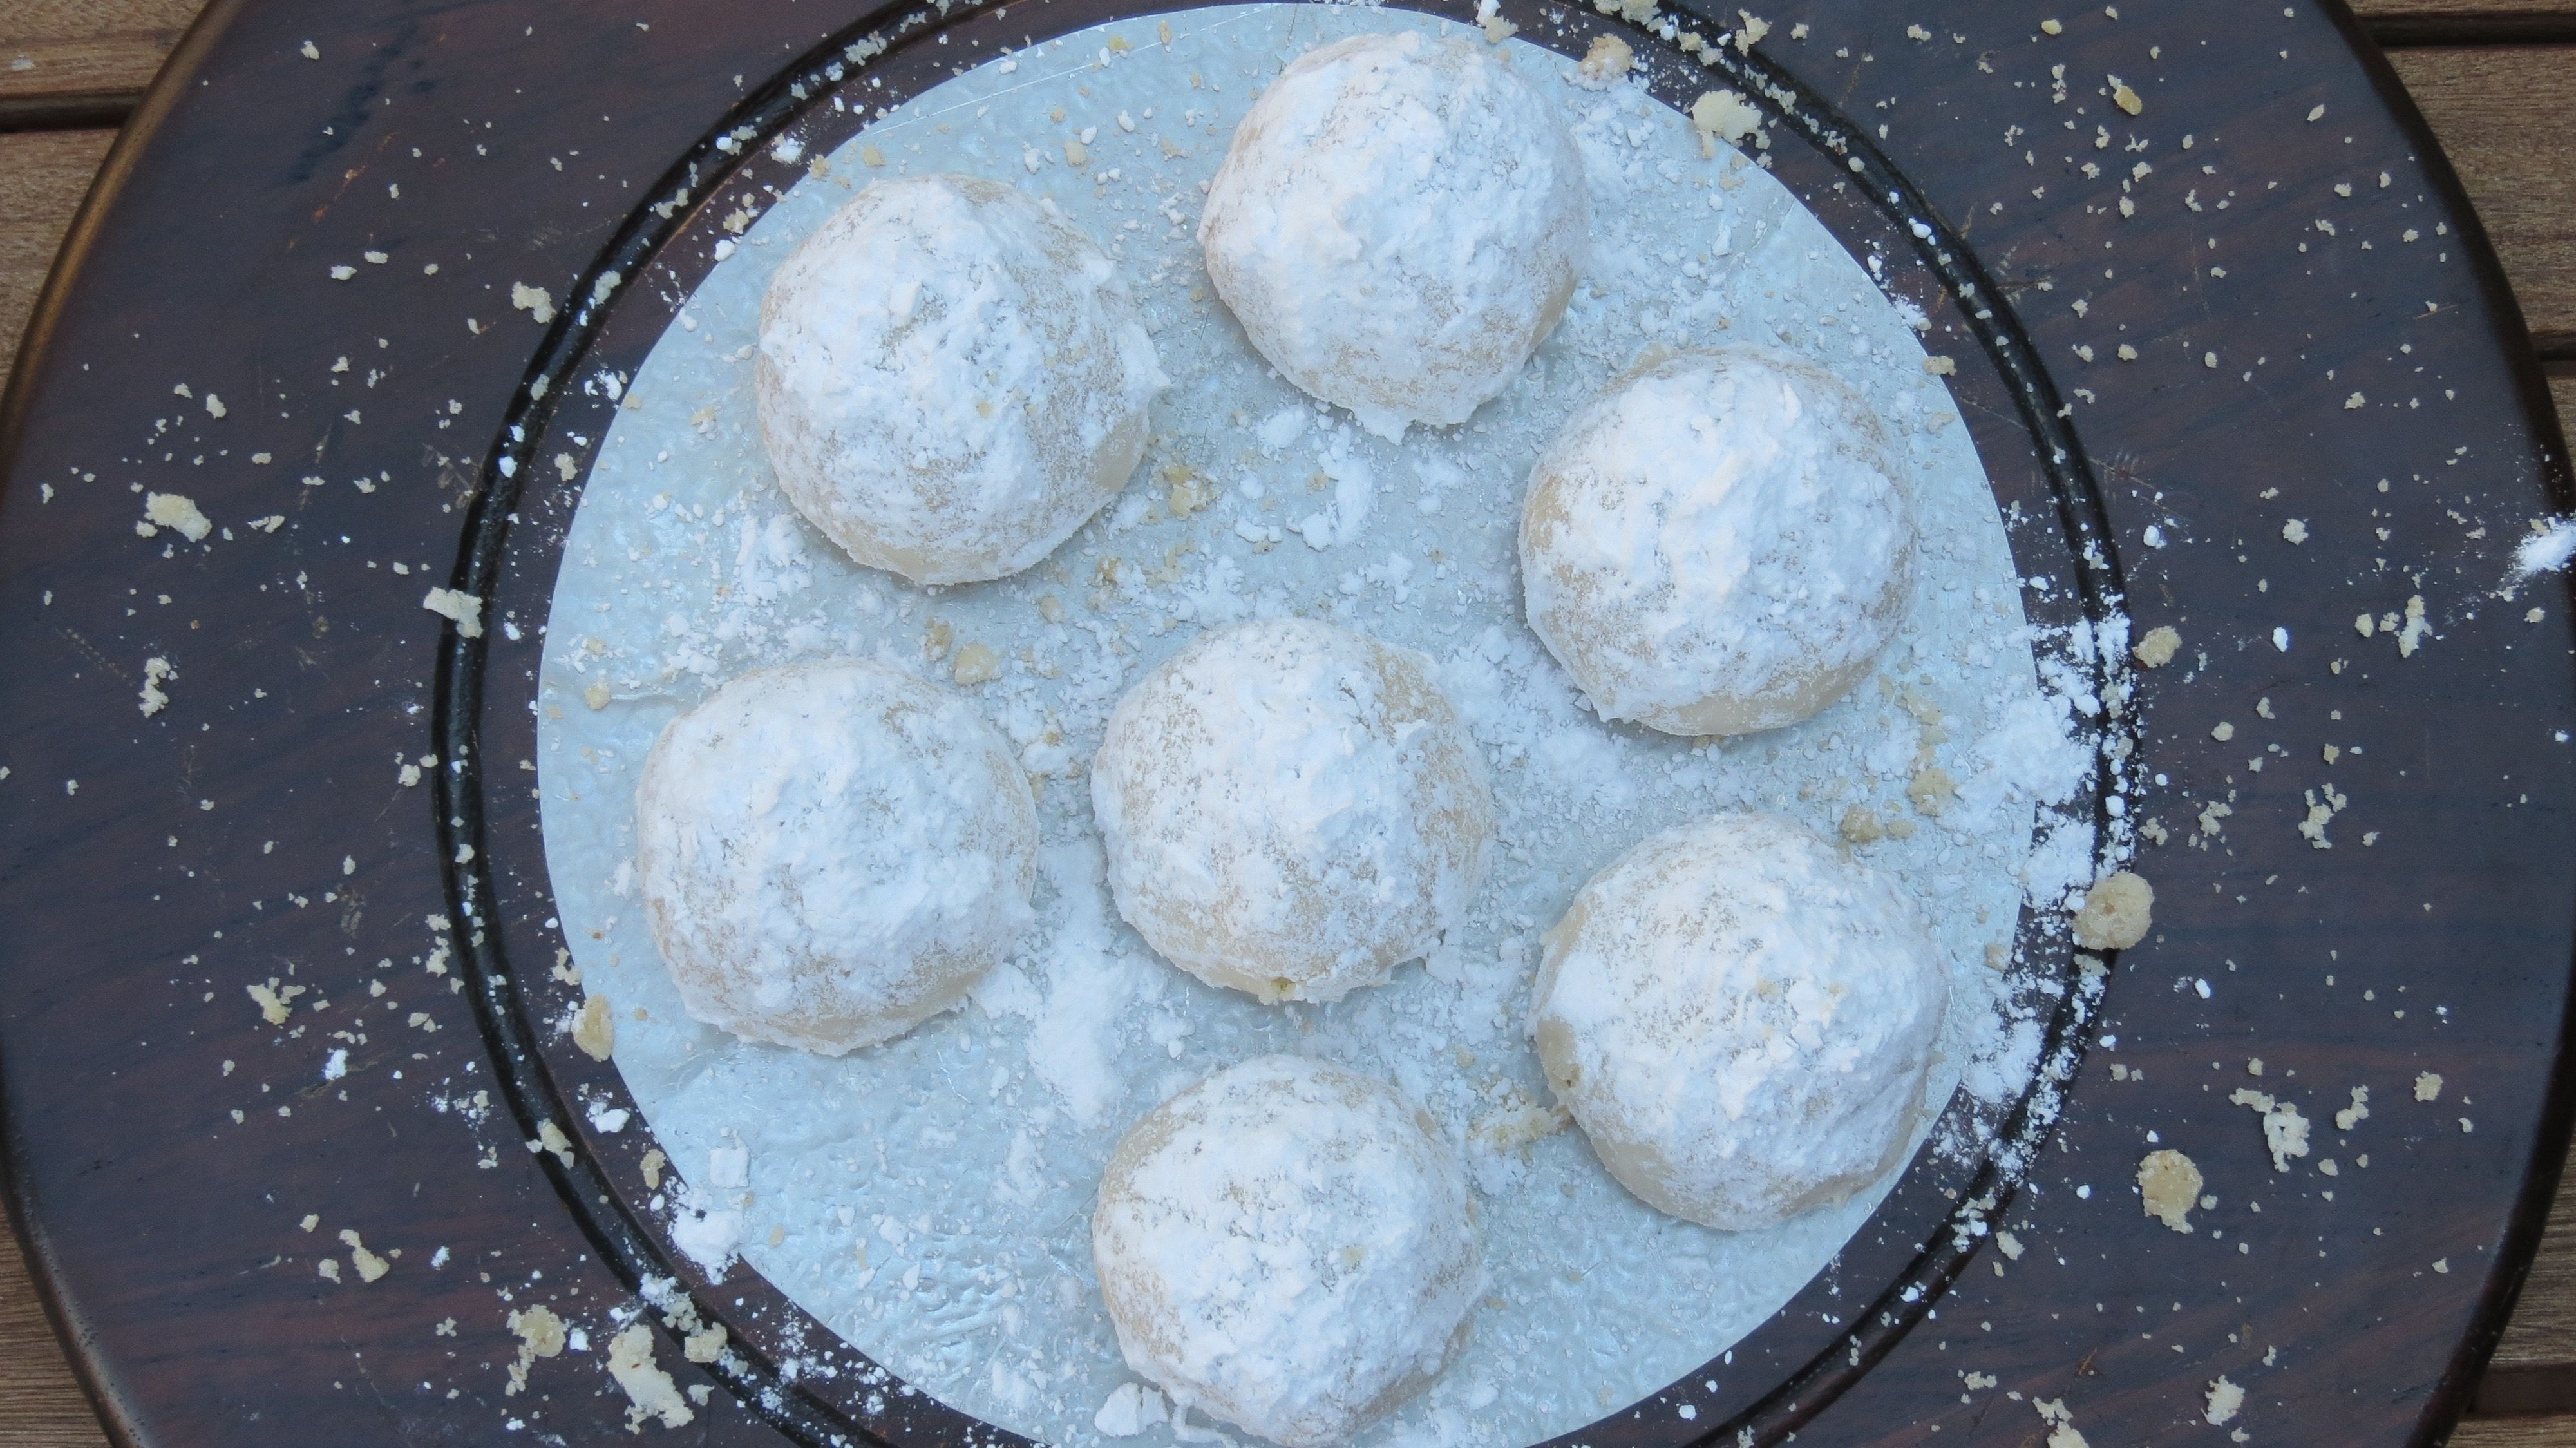 Snowball cookies are also known as Mexican wedding cakes